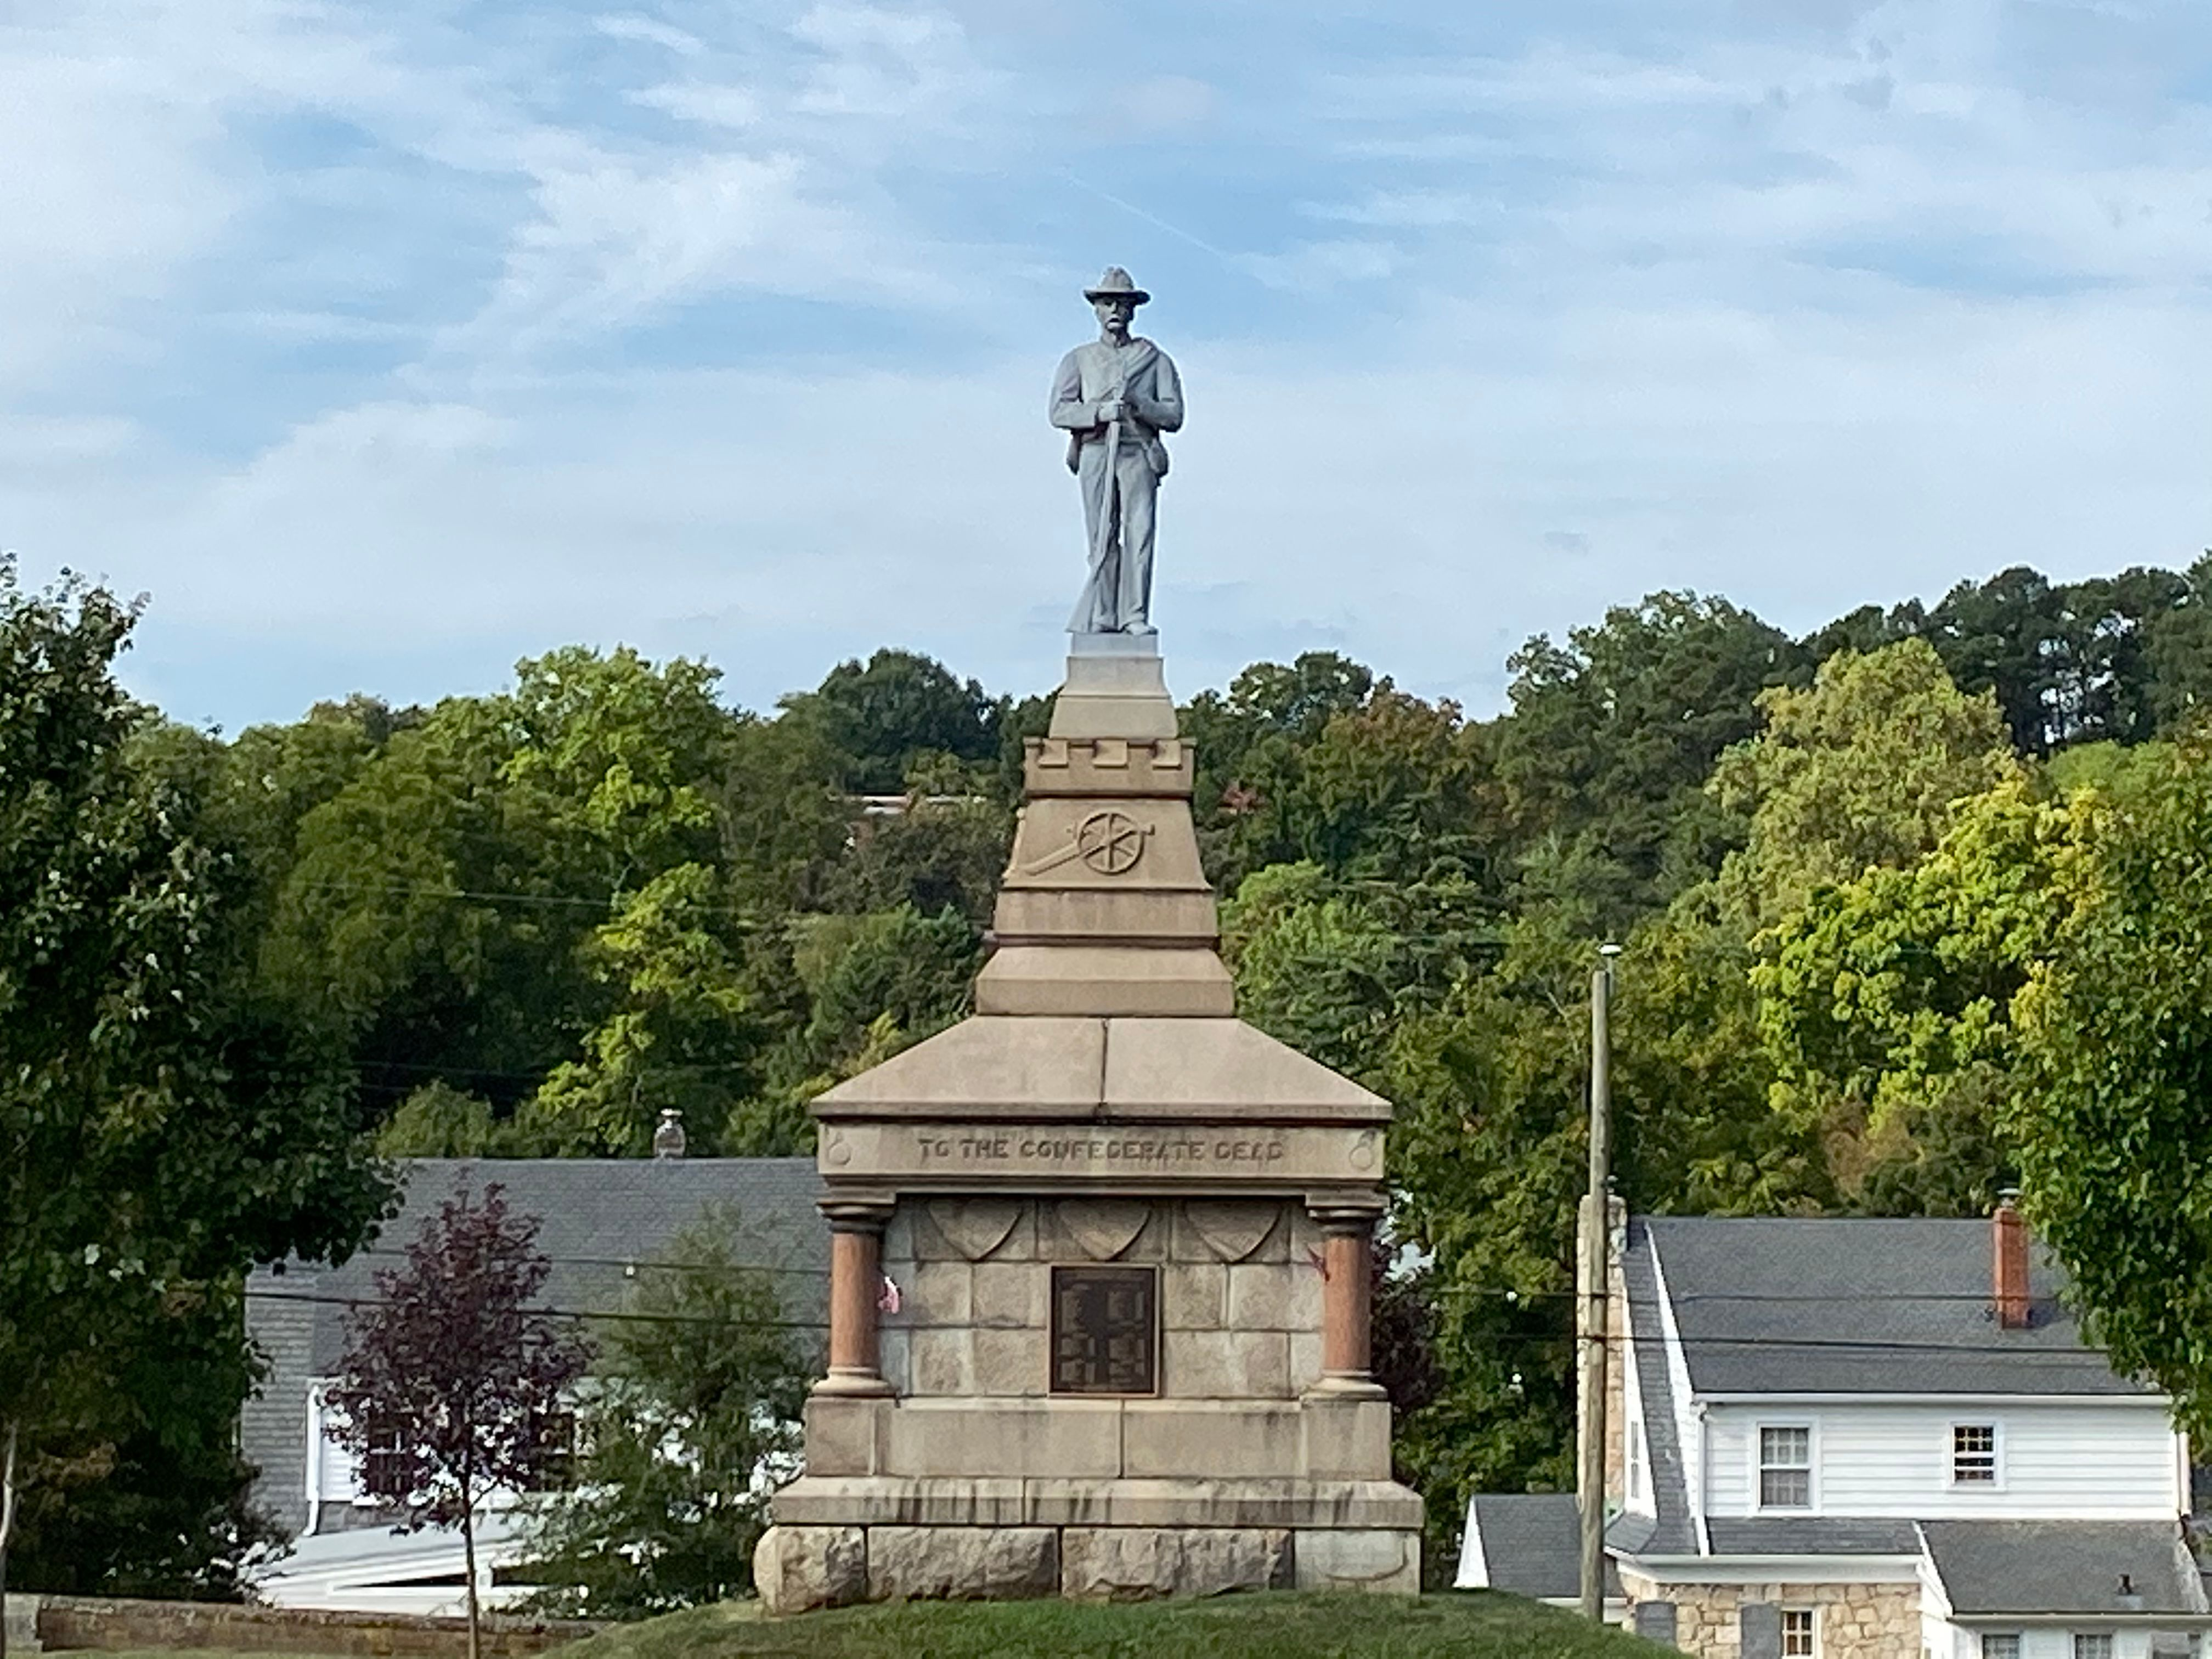 The Confederate monument in the middle of the cemetery, on top of the mass grave of unidentified remains